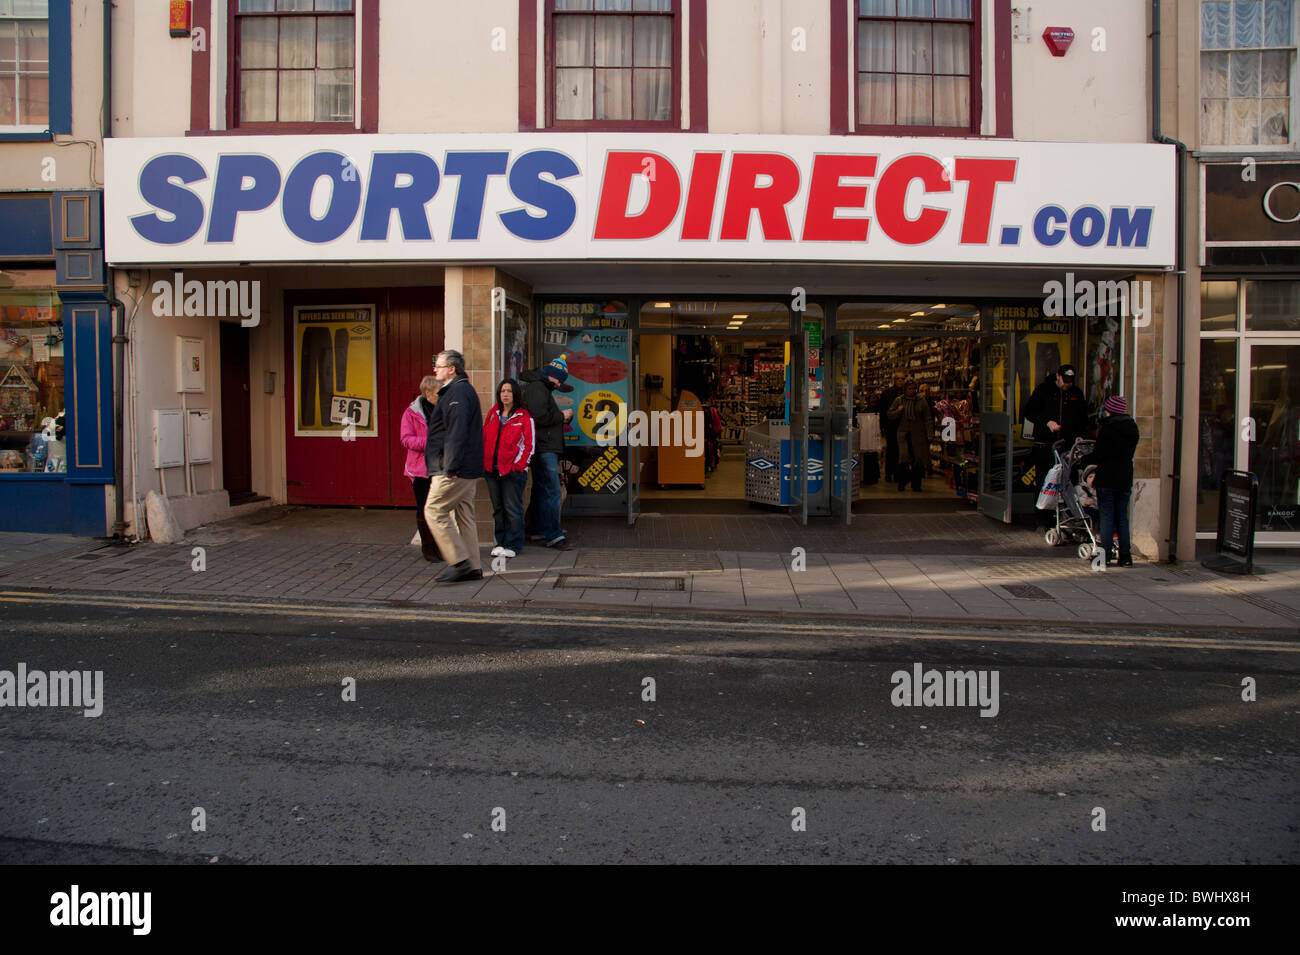 Magasin de vêtements de sports Direct.com shop UK Photo Stock